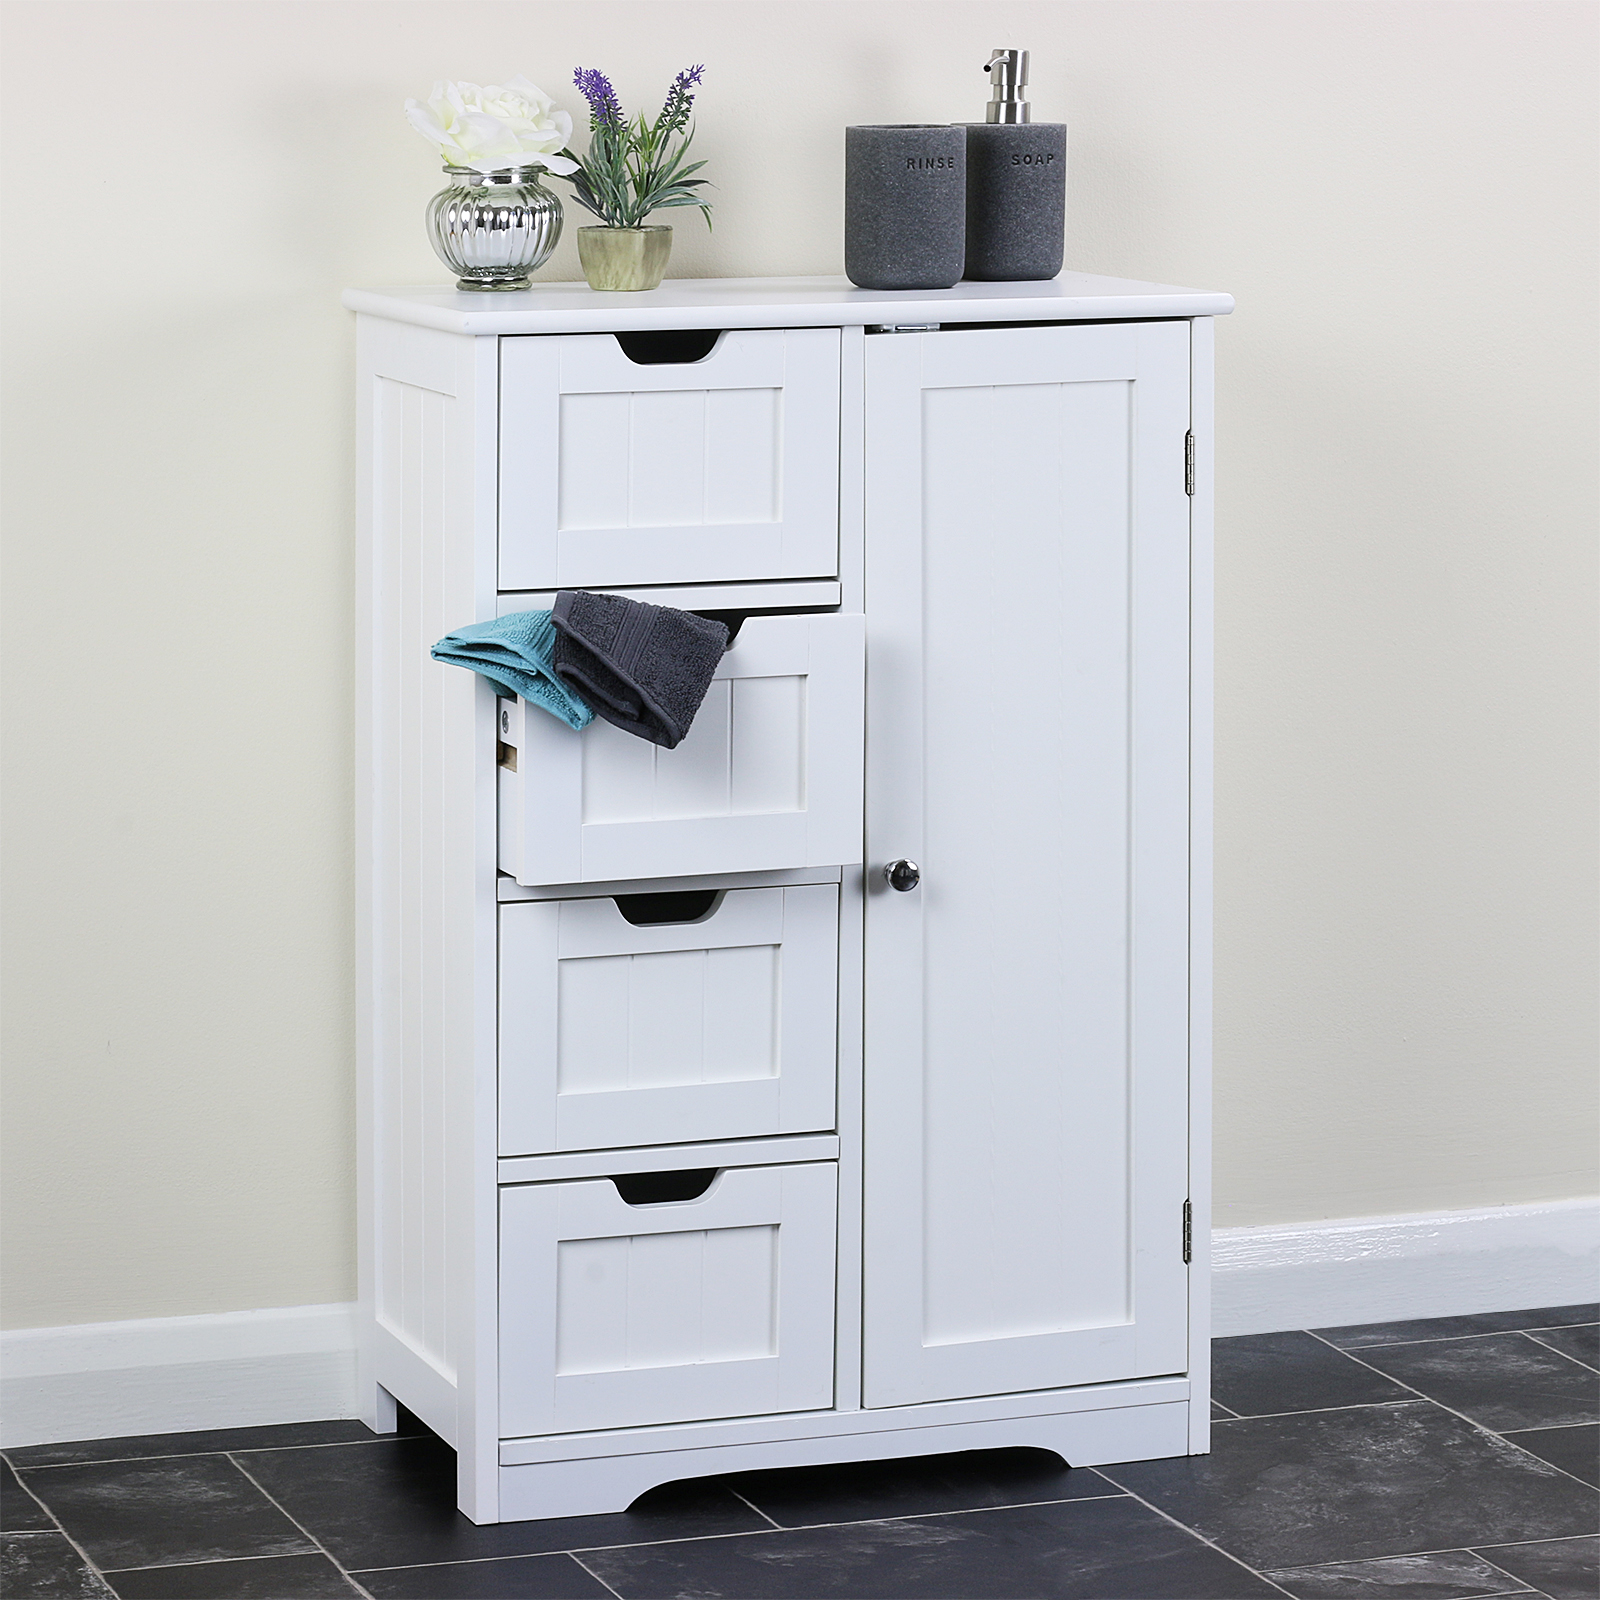 Bathroom cupboard white storage cabinet unit bedroom - Bedroom storage cabinets with drawers ...